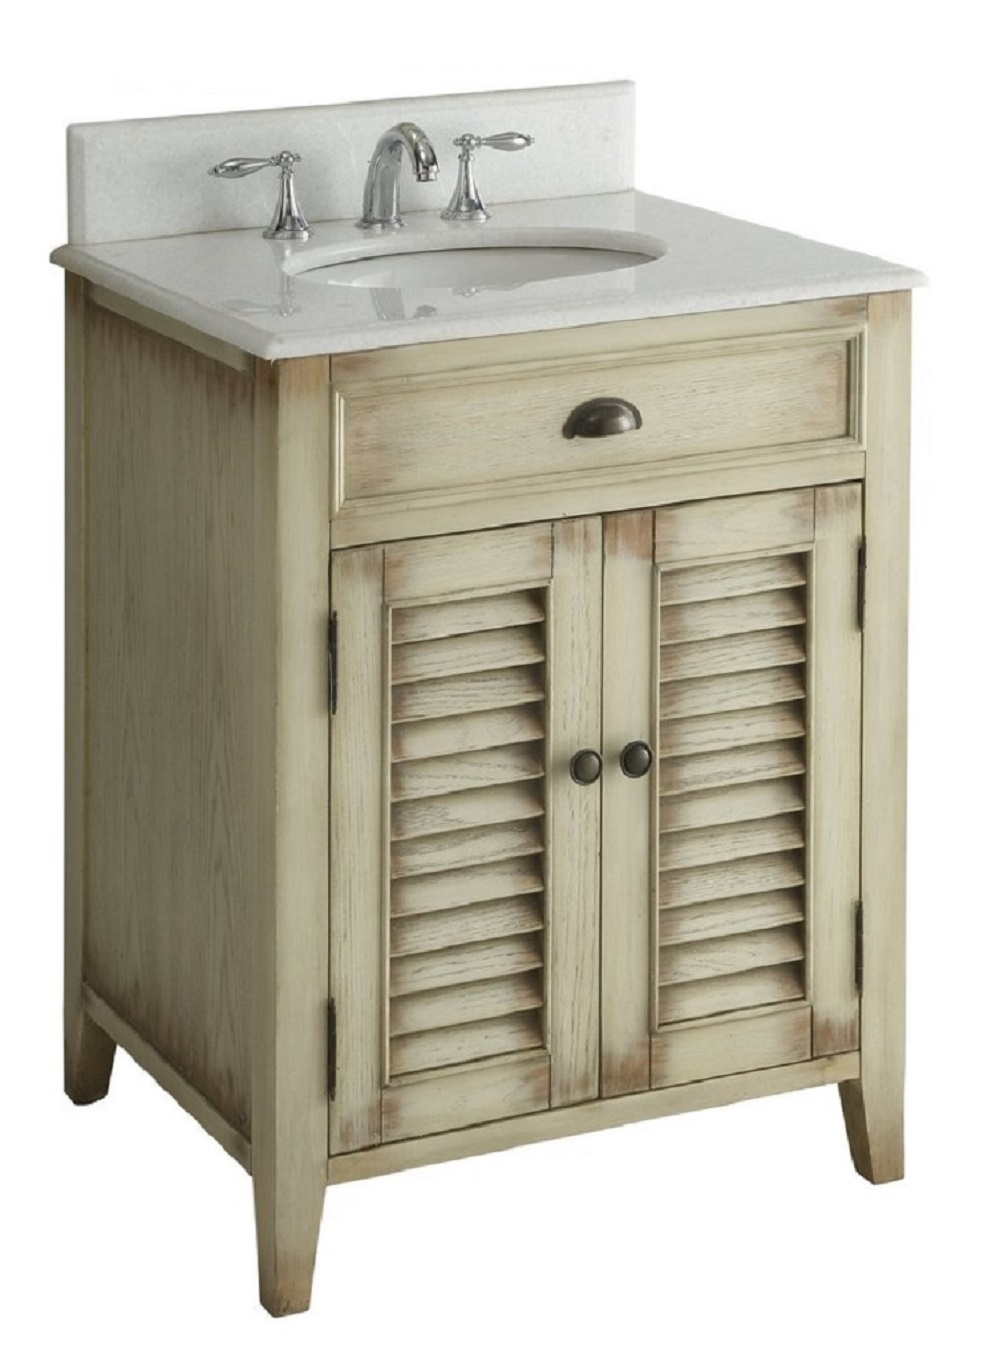 26 Inch Bathroom Vanity Cottage Beach Style Distressed Beige Color 26 Ccf28323